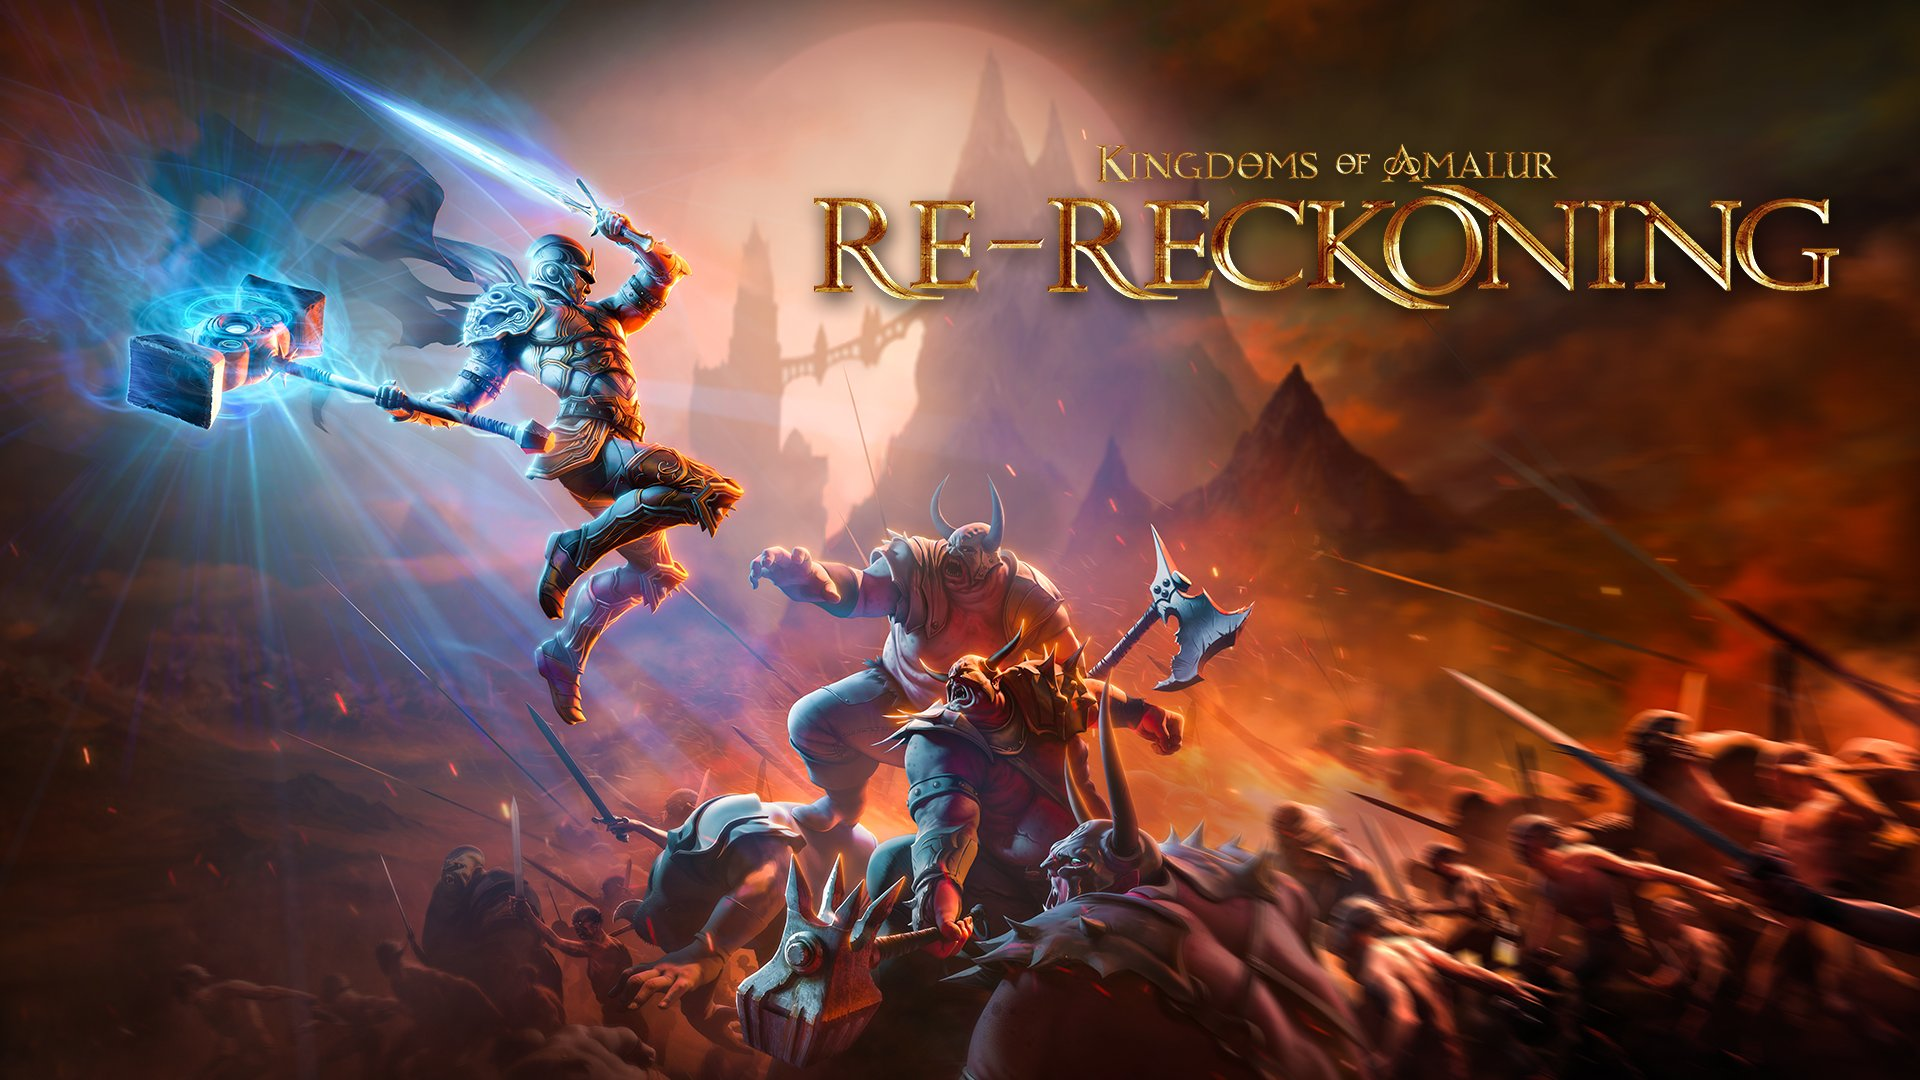 Kingdoms of Amalur: Re-Reckoning coming to Switch on March 16